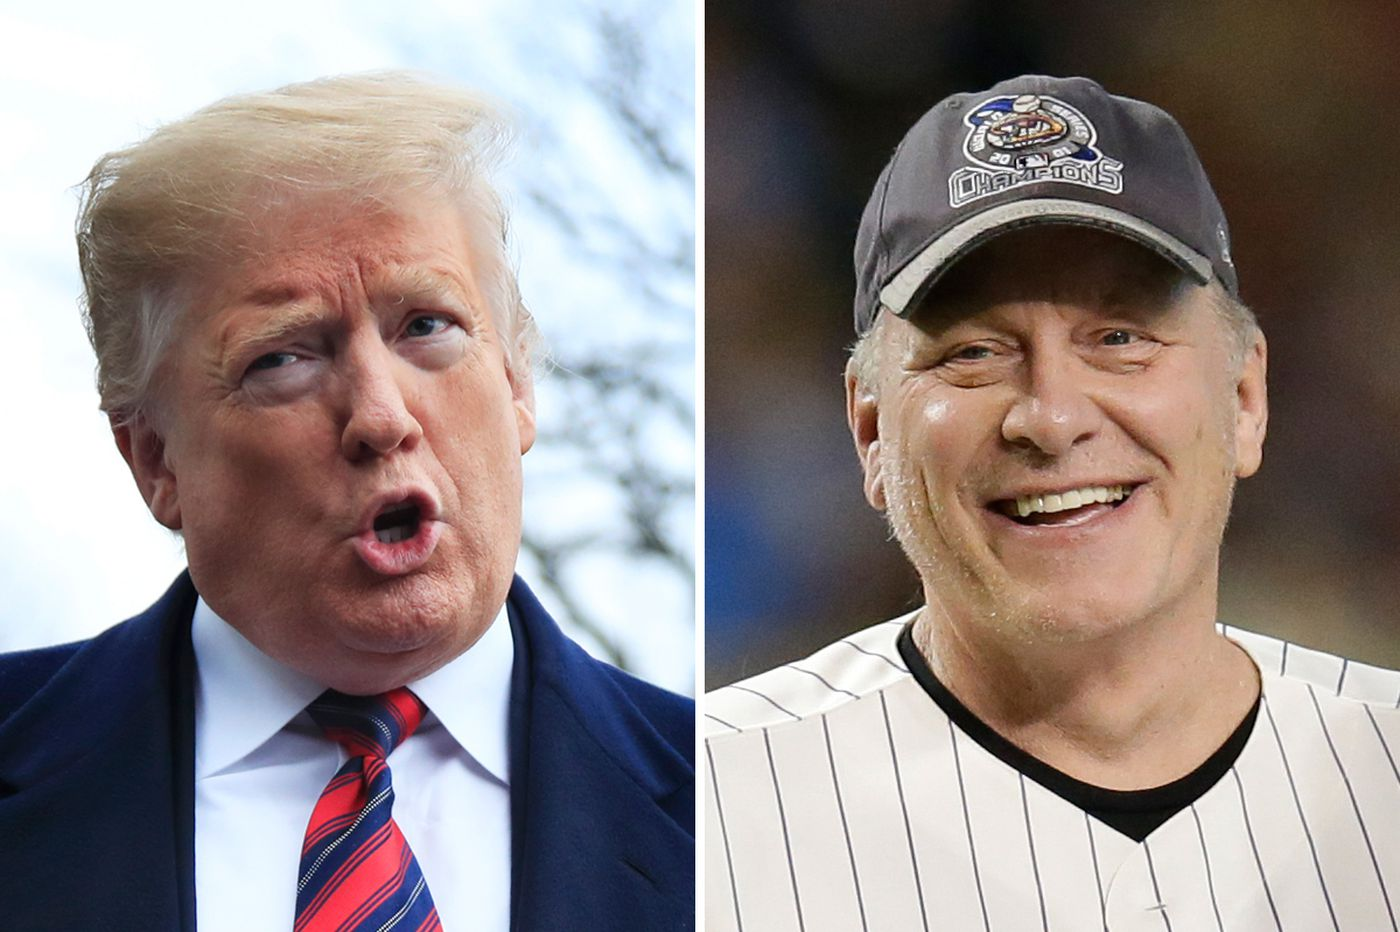 Trump wants Curt Schilling in the Hall of Fame, but his endorsement is a little too late